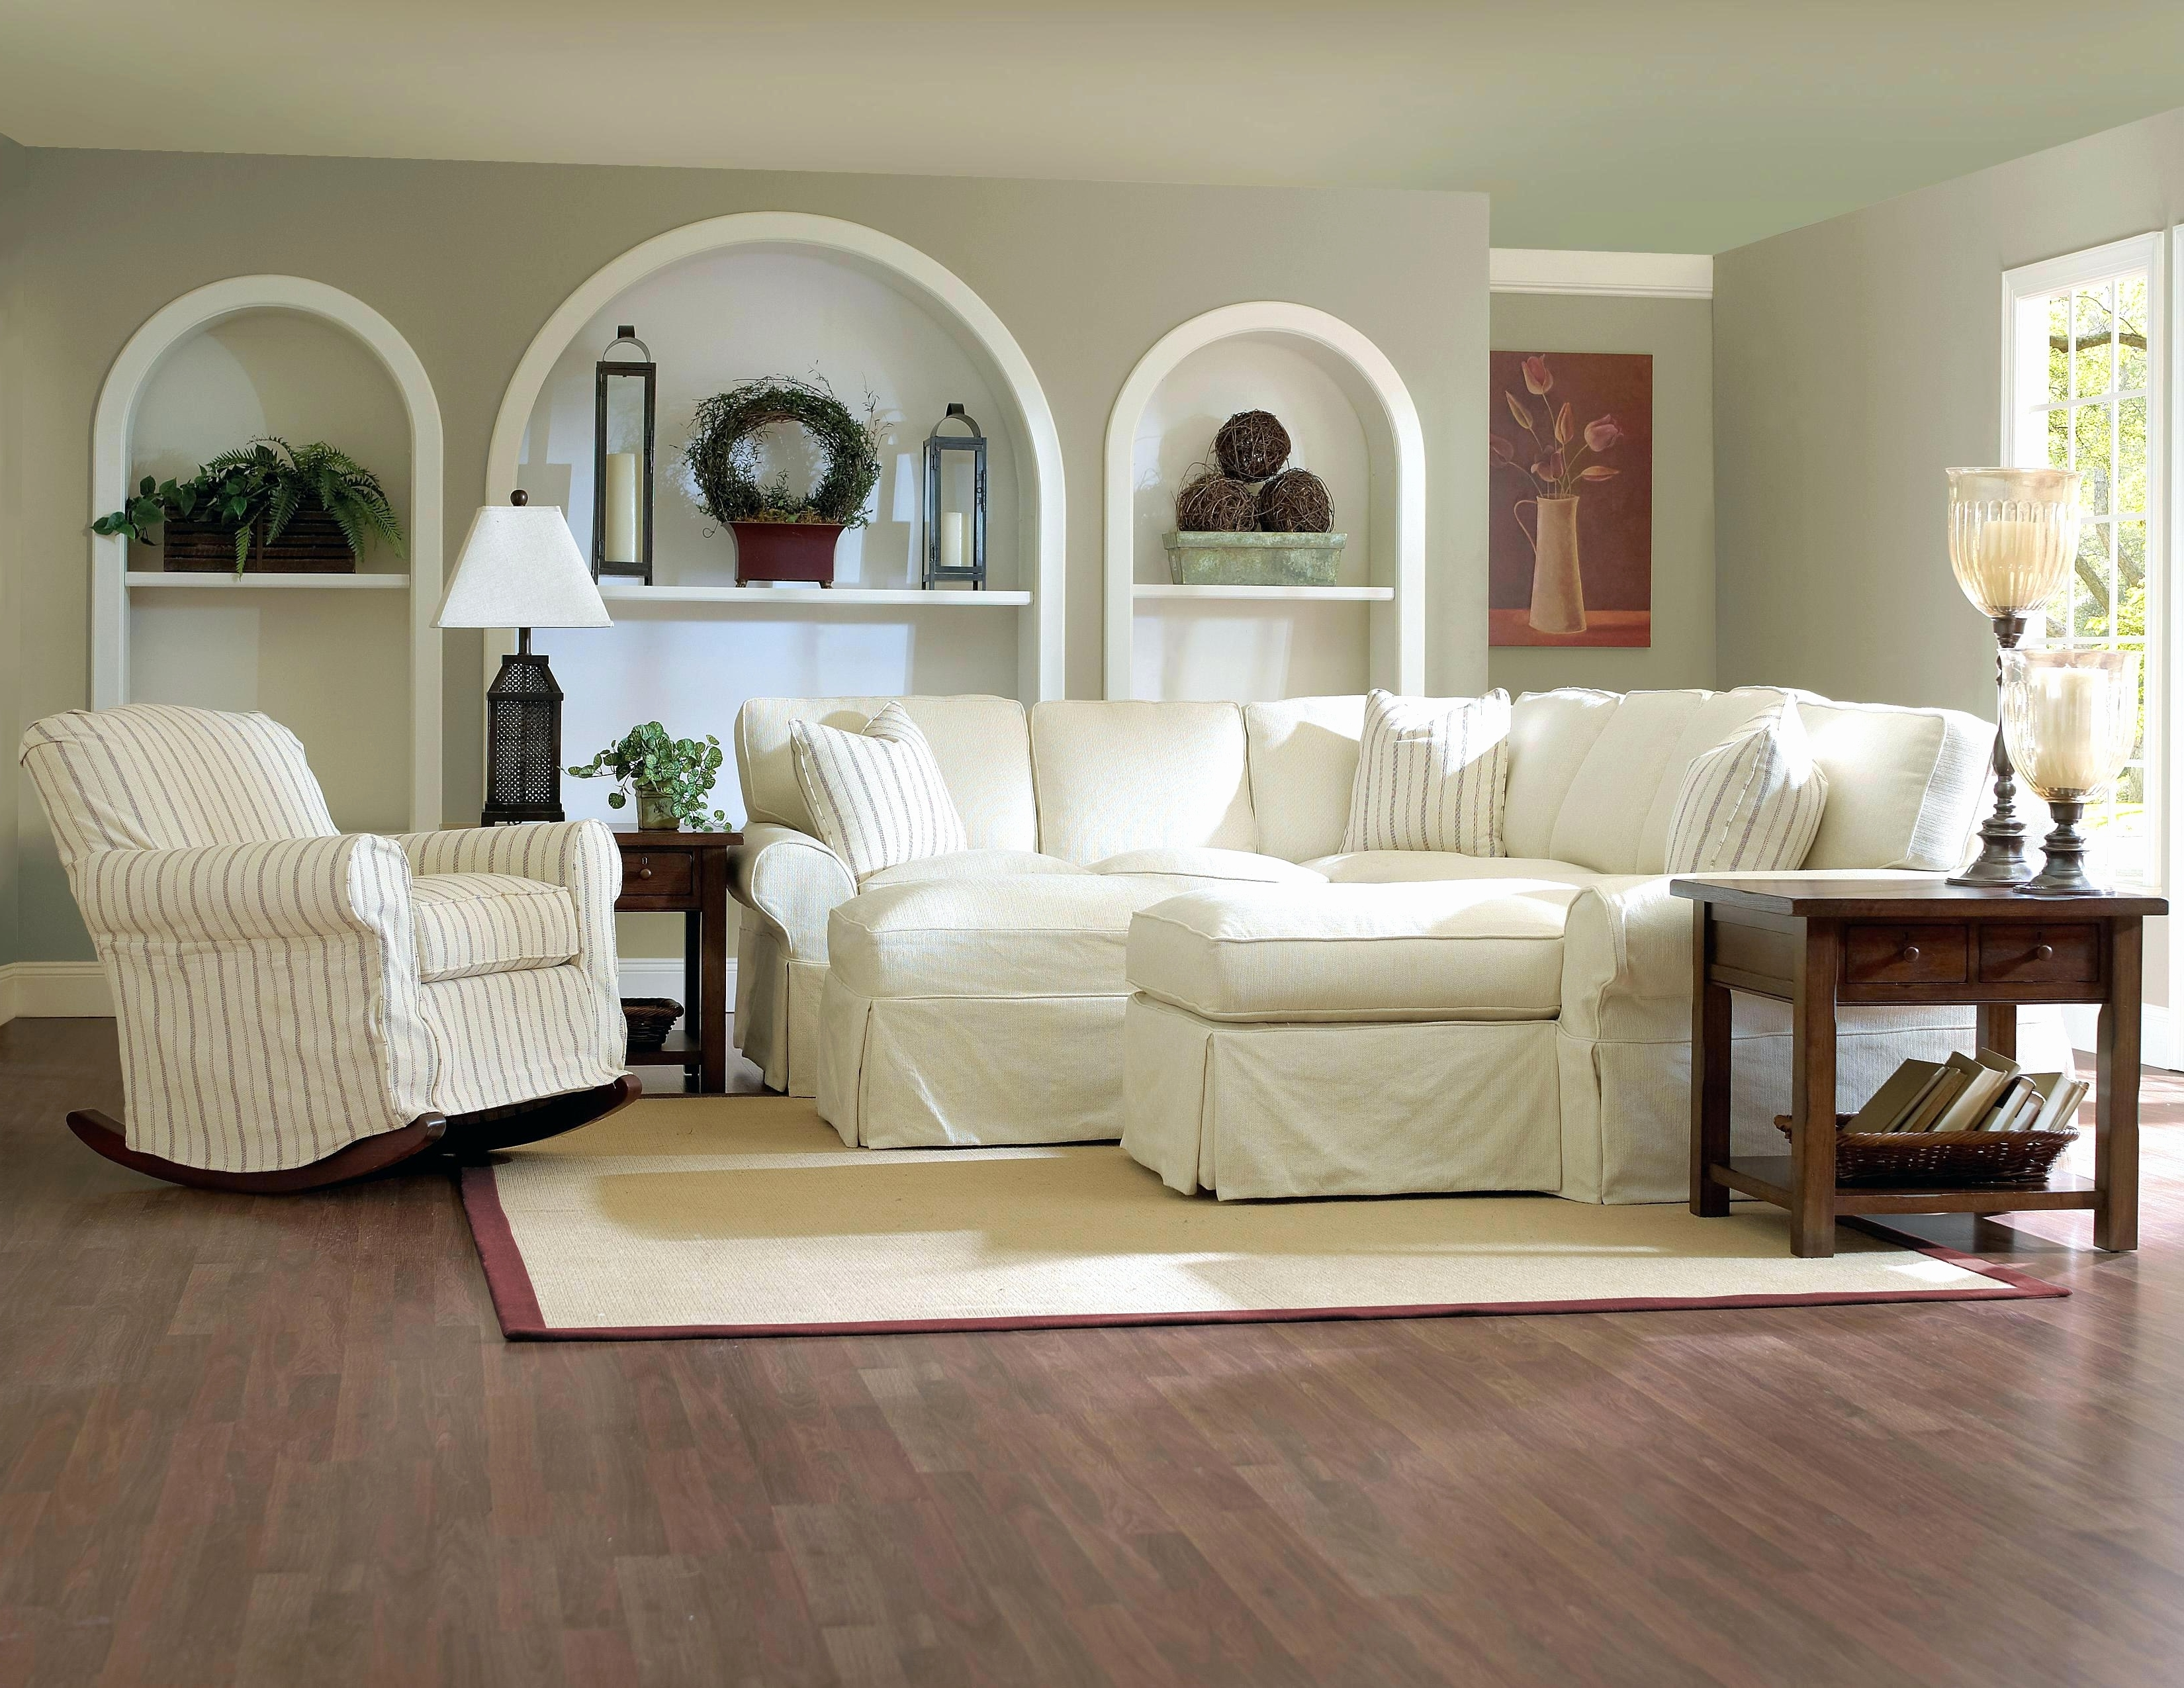 Fashionable Pottery Barn Sectional Sofas Within Elegant Most Comfortable Pottery Barn Sofa 2018 – Couches And (View 18 of 20)